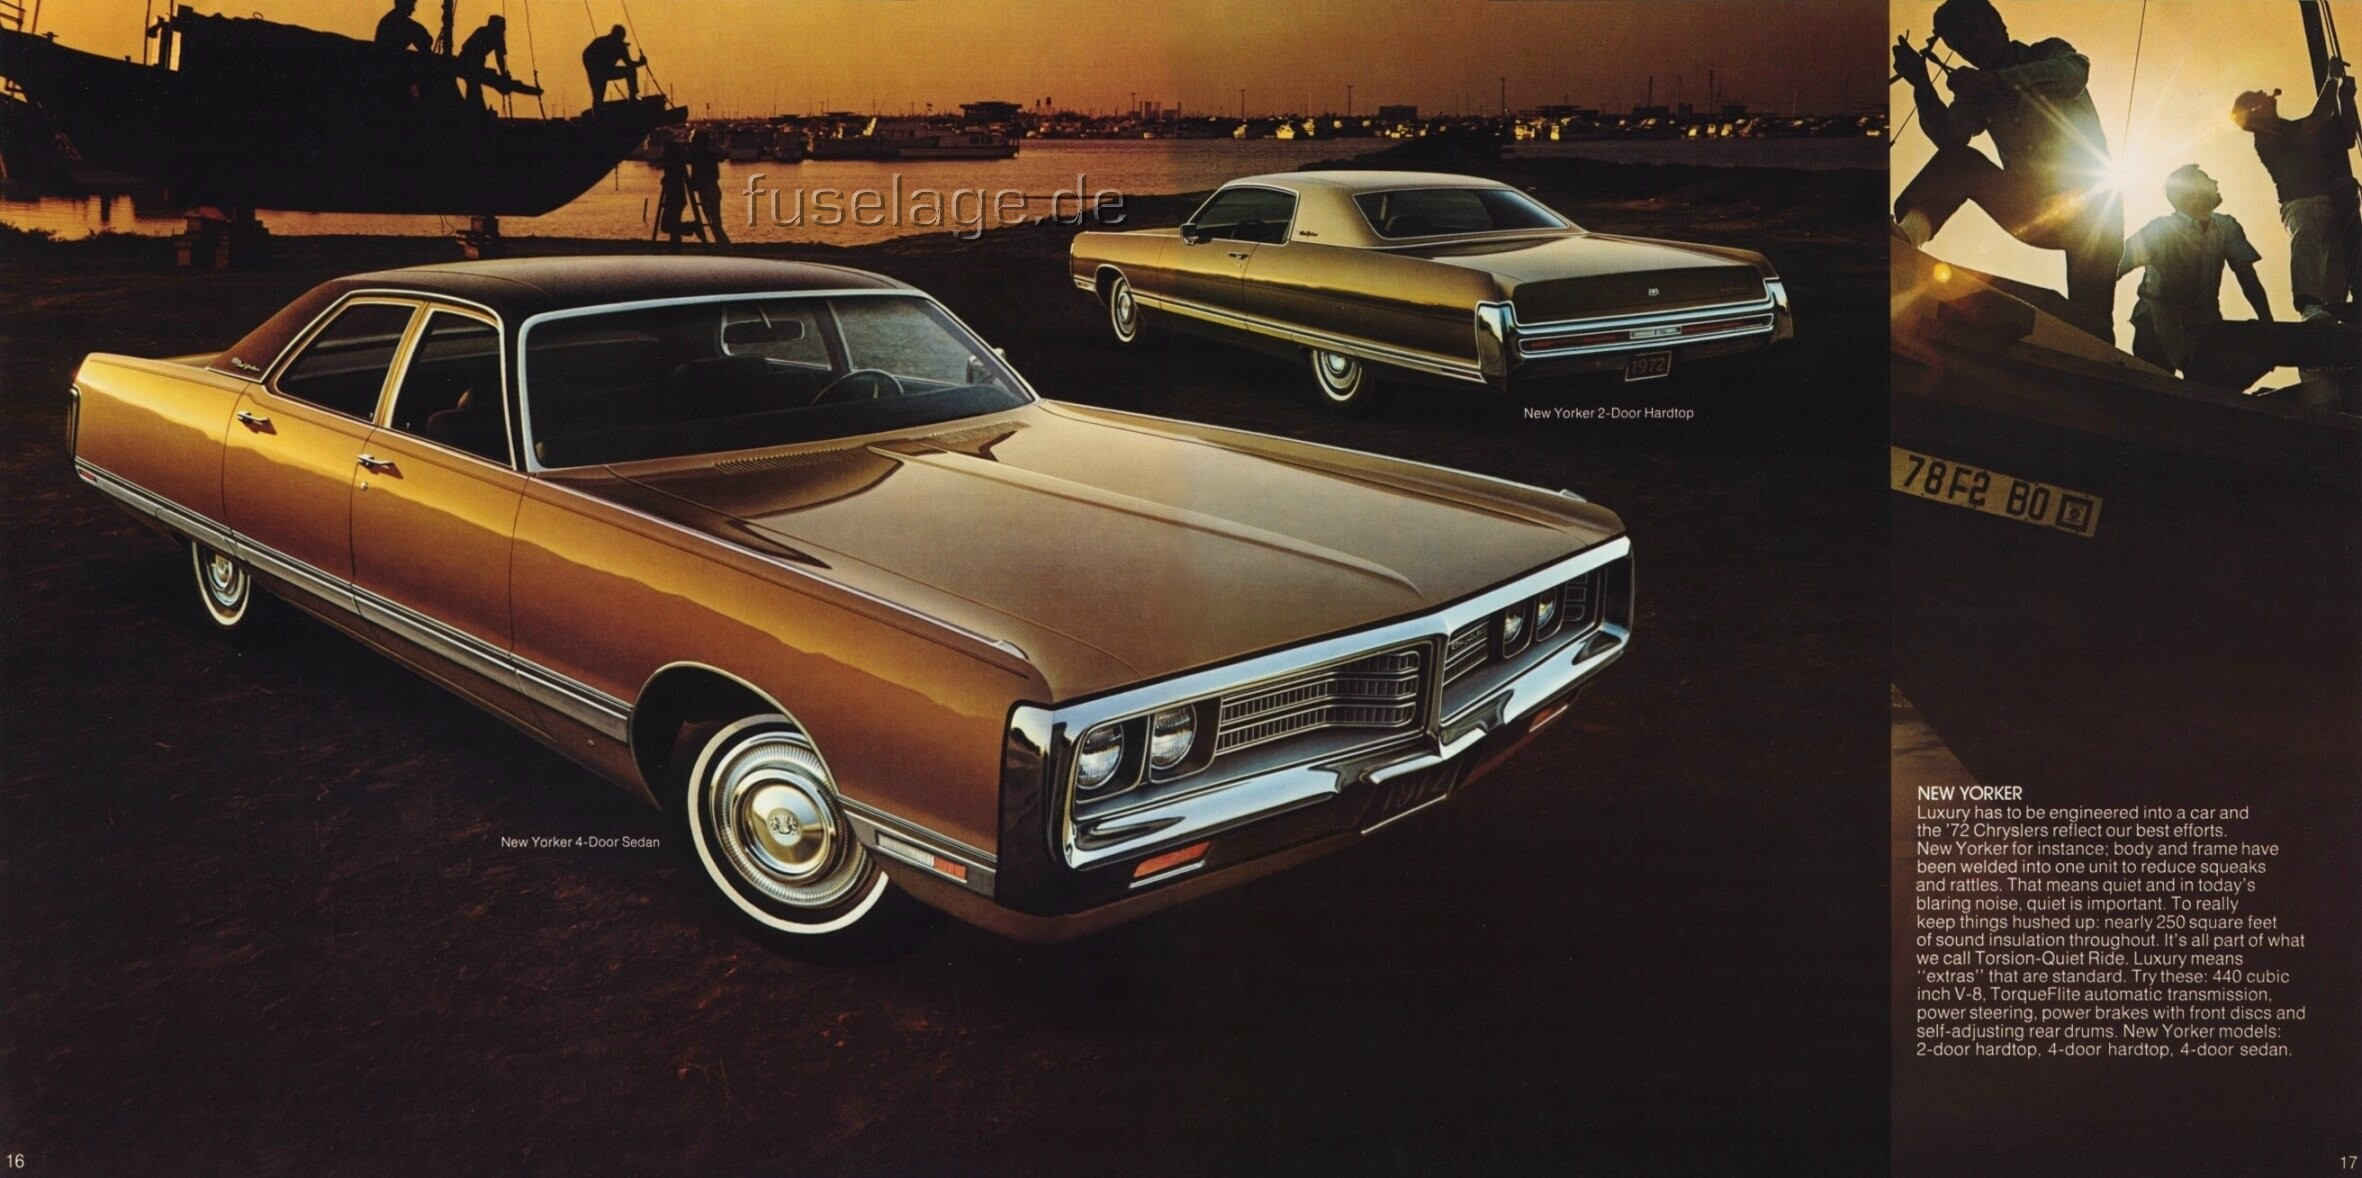 1973 chrysler new yorker with 1 on File 1962 Buick Electra 225 together with 272021270915 besides 131871095308785403 additionally 1974 Chevrolet Caprice Classic photo together with 1.